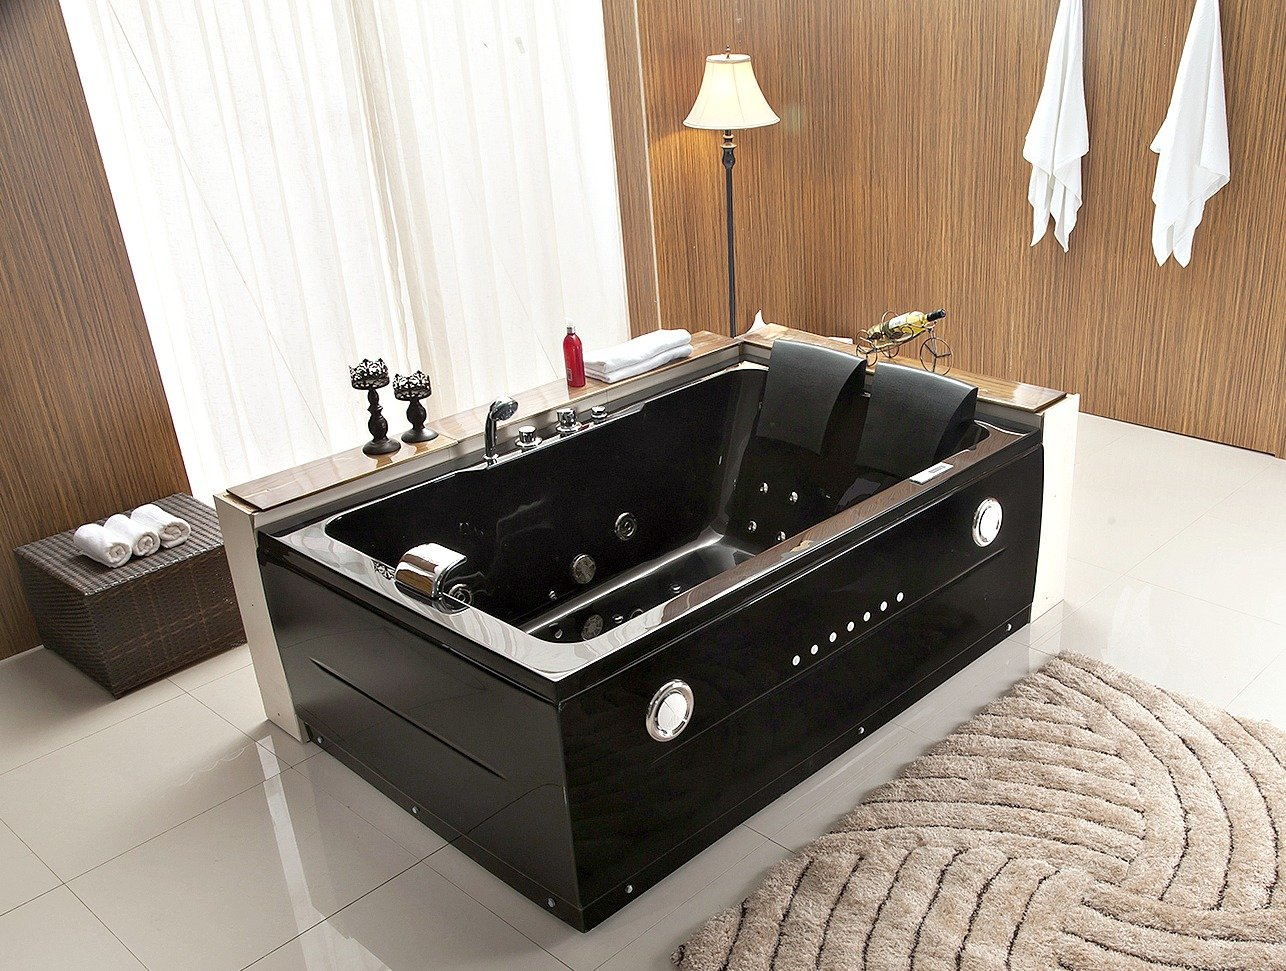 2 Person Bathtub Black Jacuzzi Type Whirlpool 14 Massage Jets Built ...